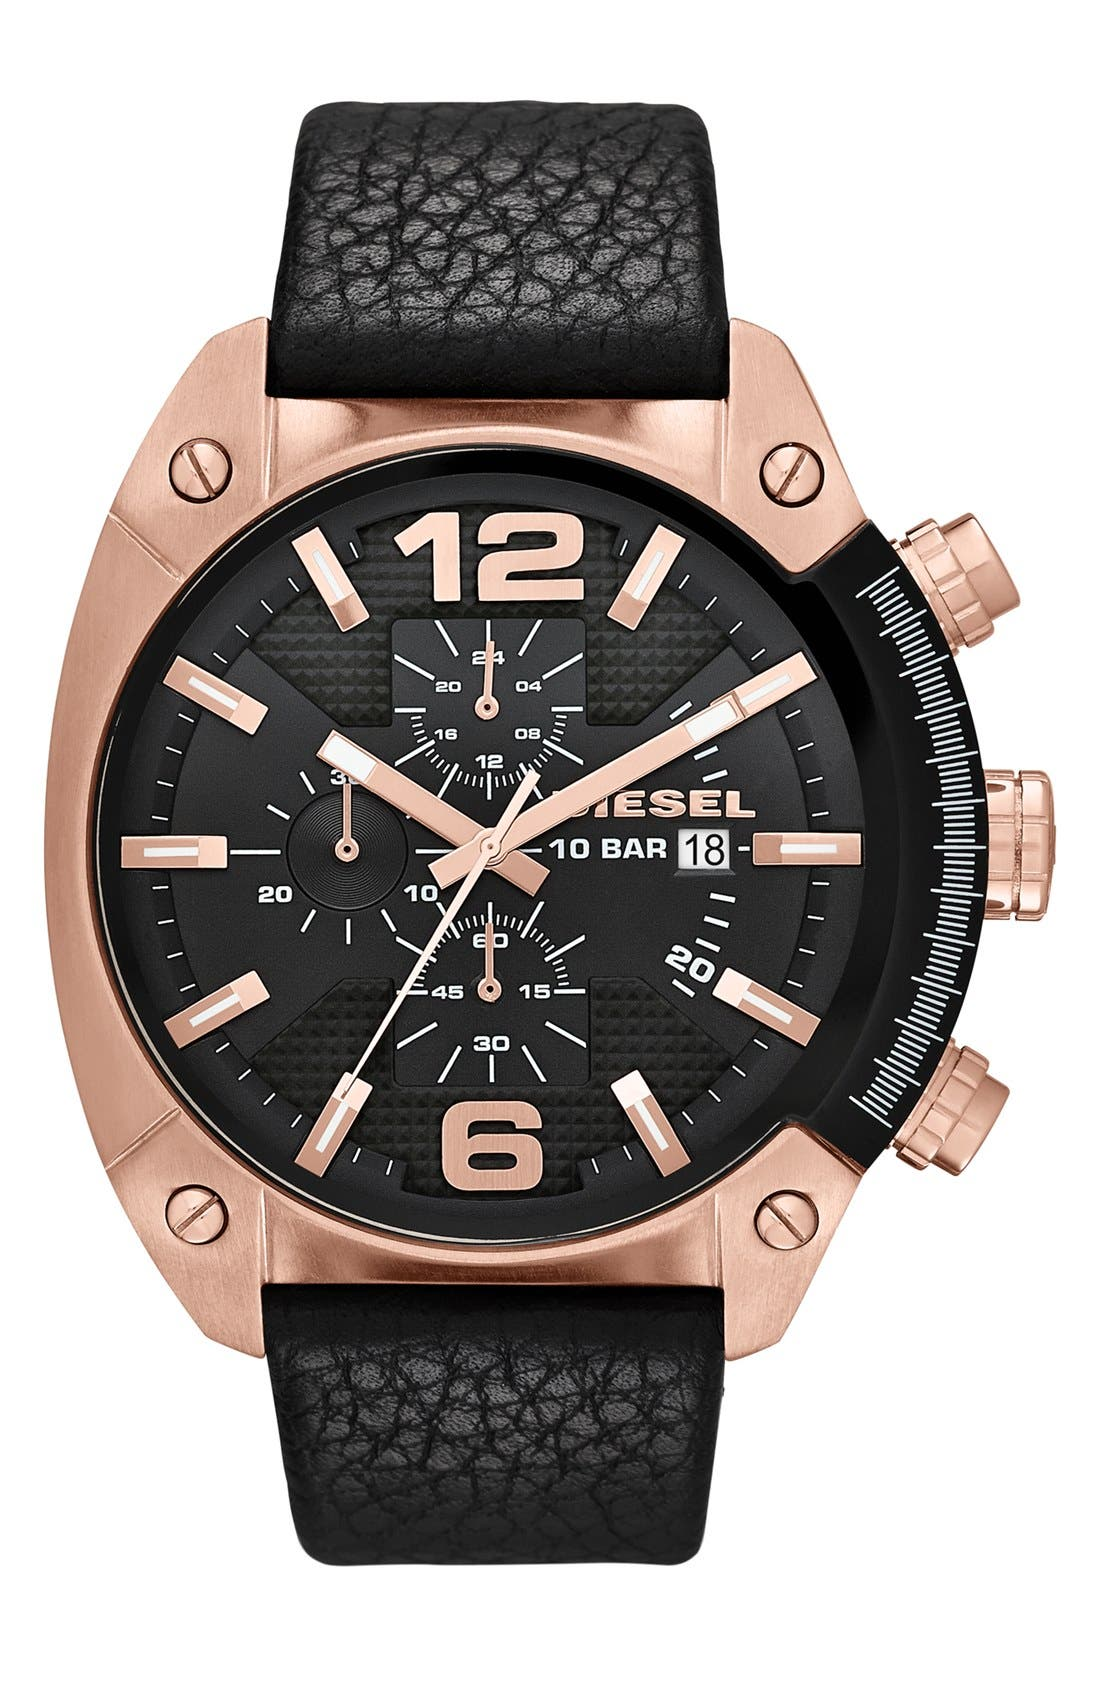 Main Image - DIESEL® 'Overflow' Chronograph Leather Strap Watch, 46mm x 49mm